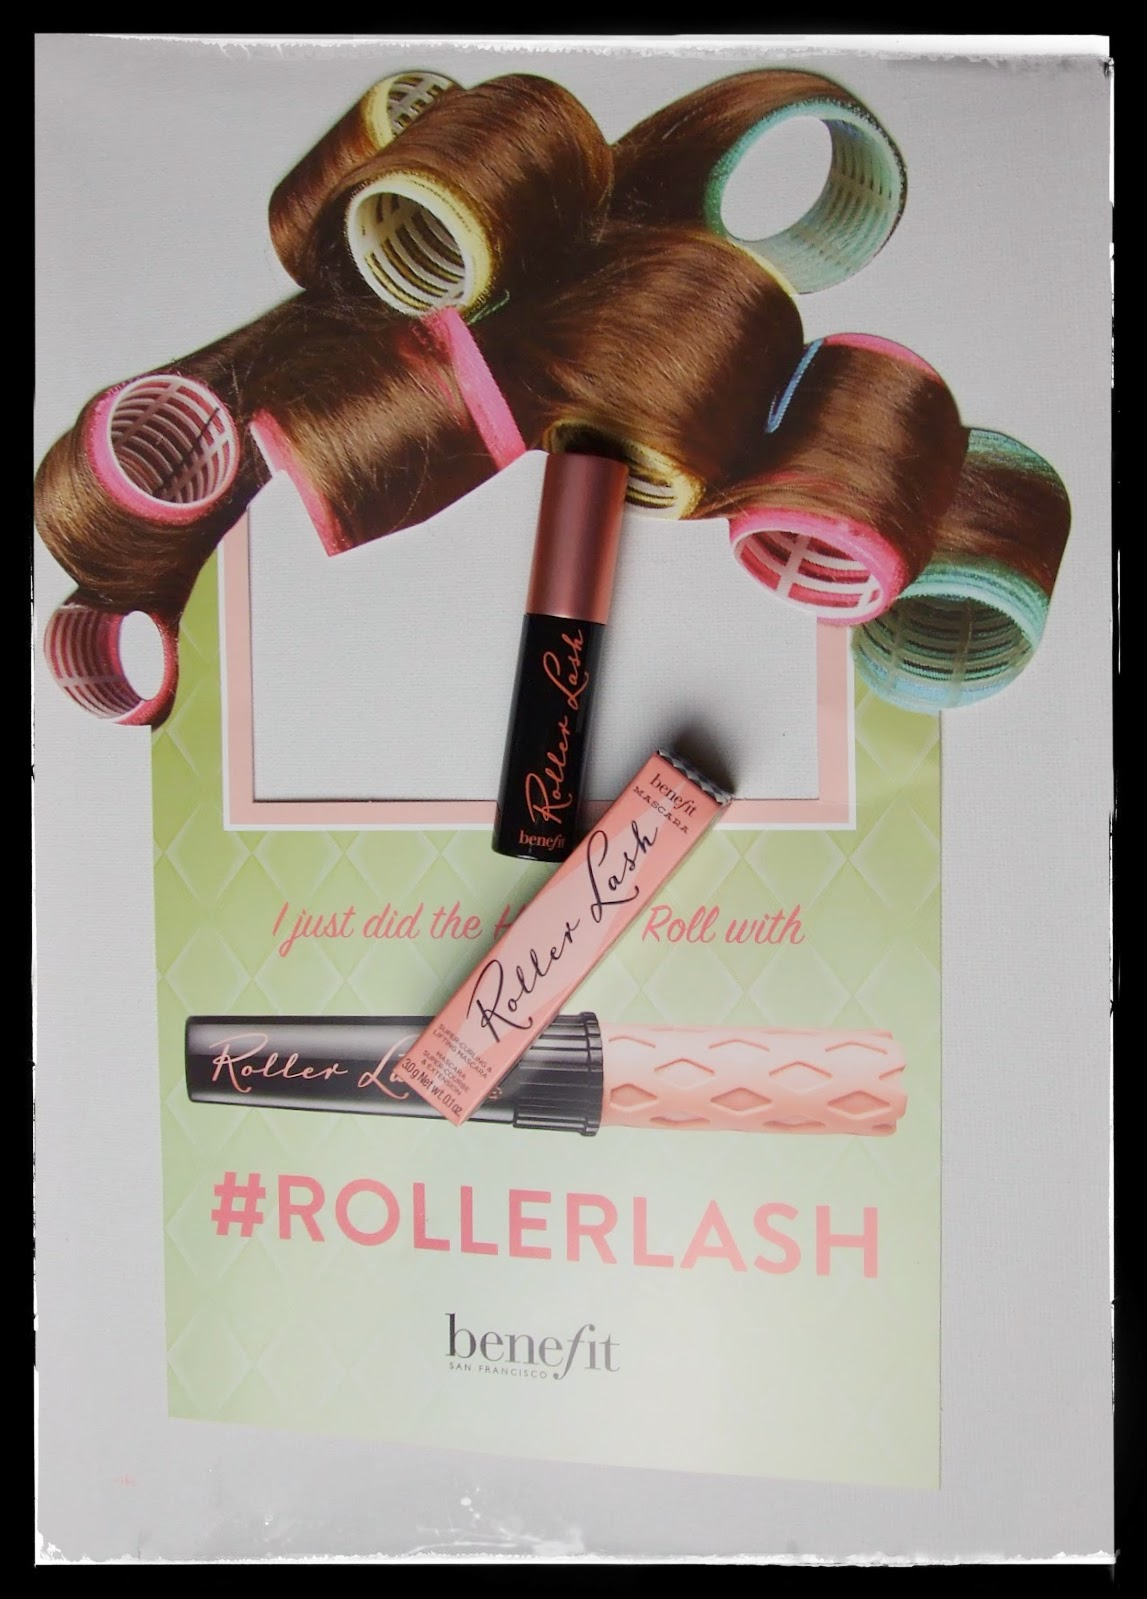 UK elle magazine benefit's roller lash mascara new #rollerlash